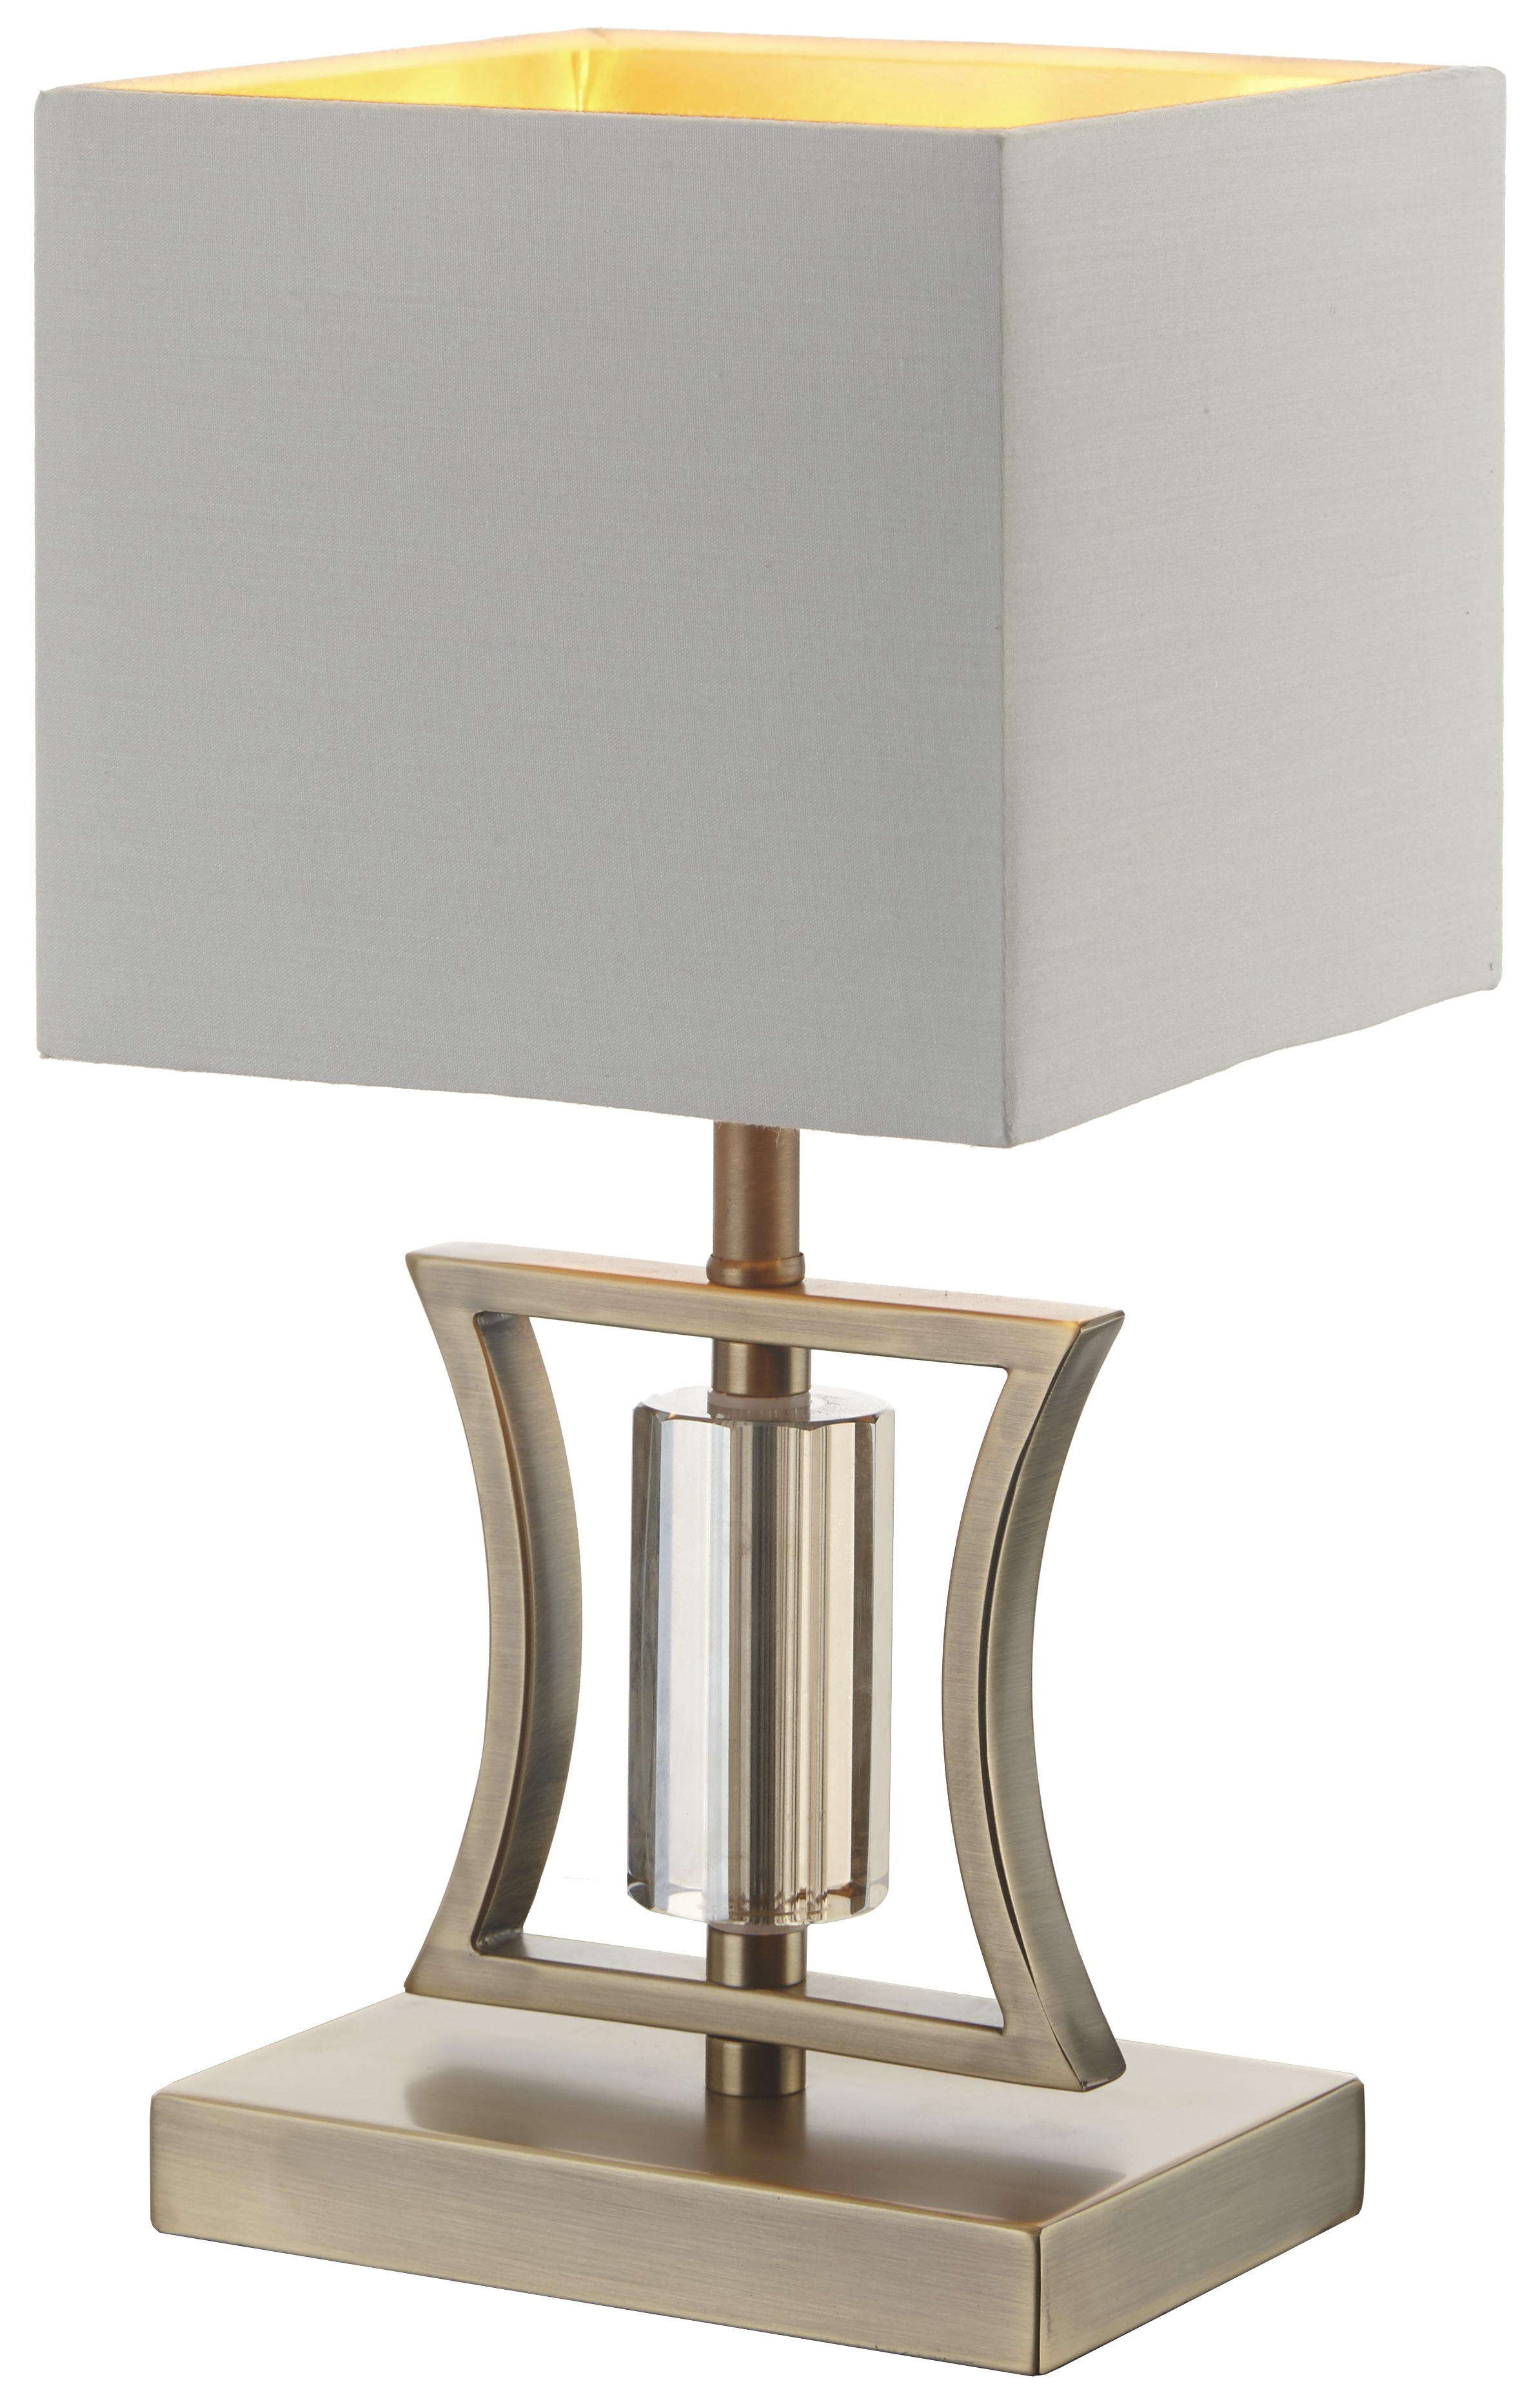 Rv Astley Aberto Antique Brass Table Lamp